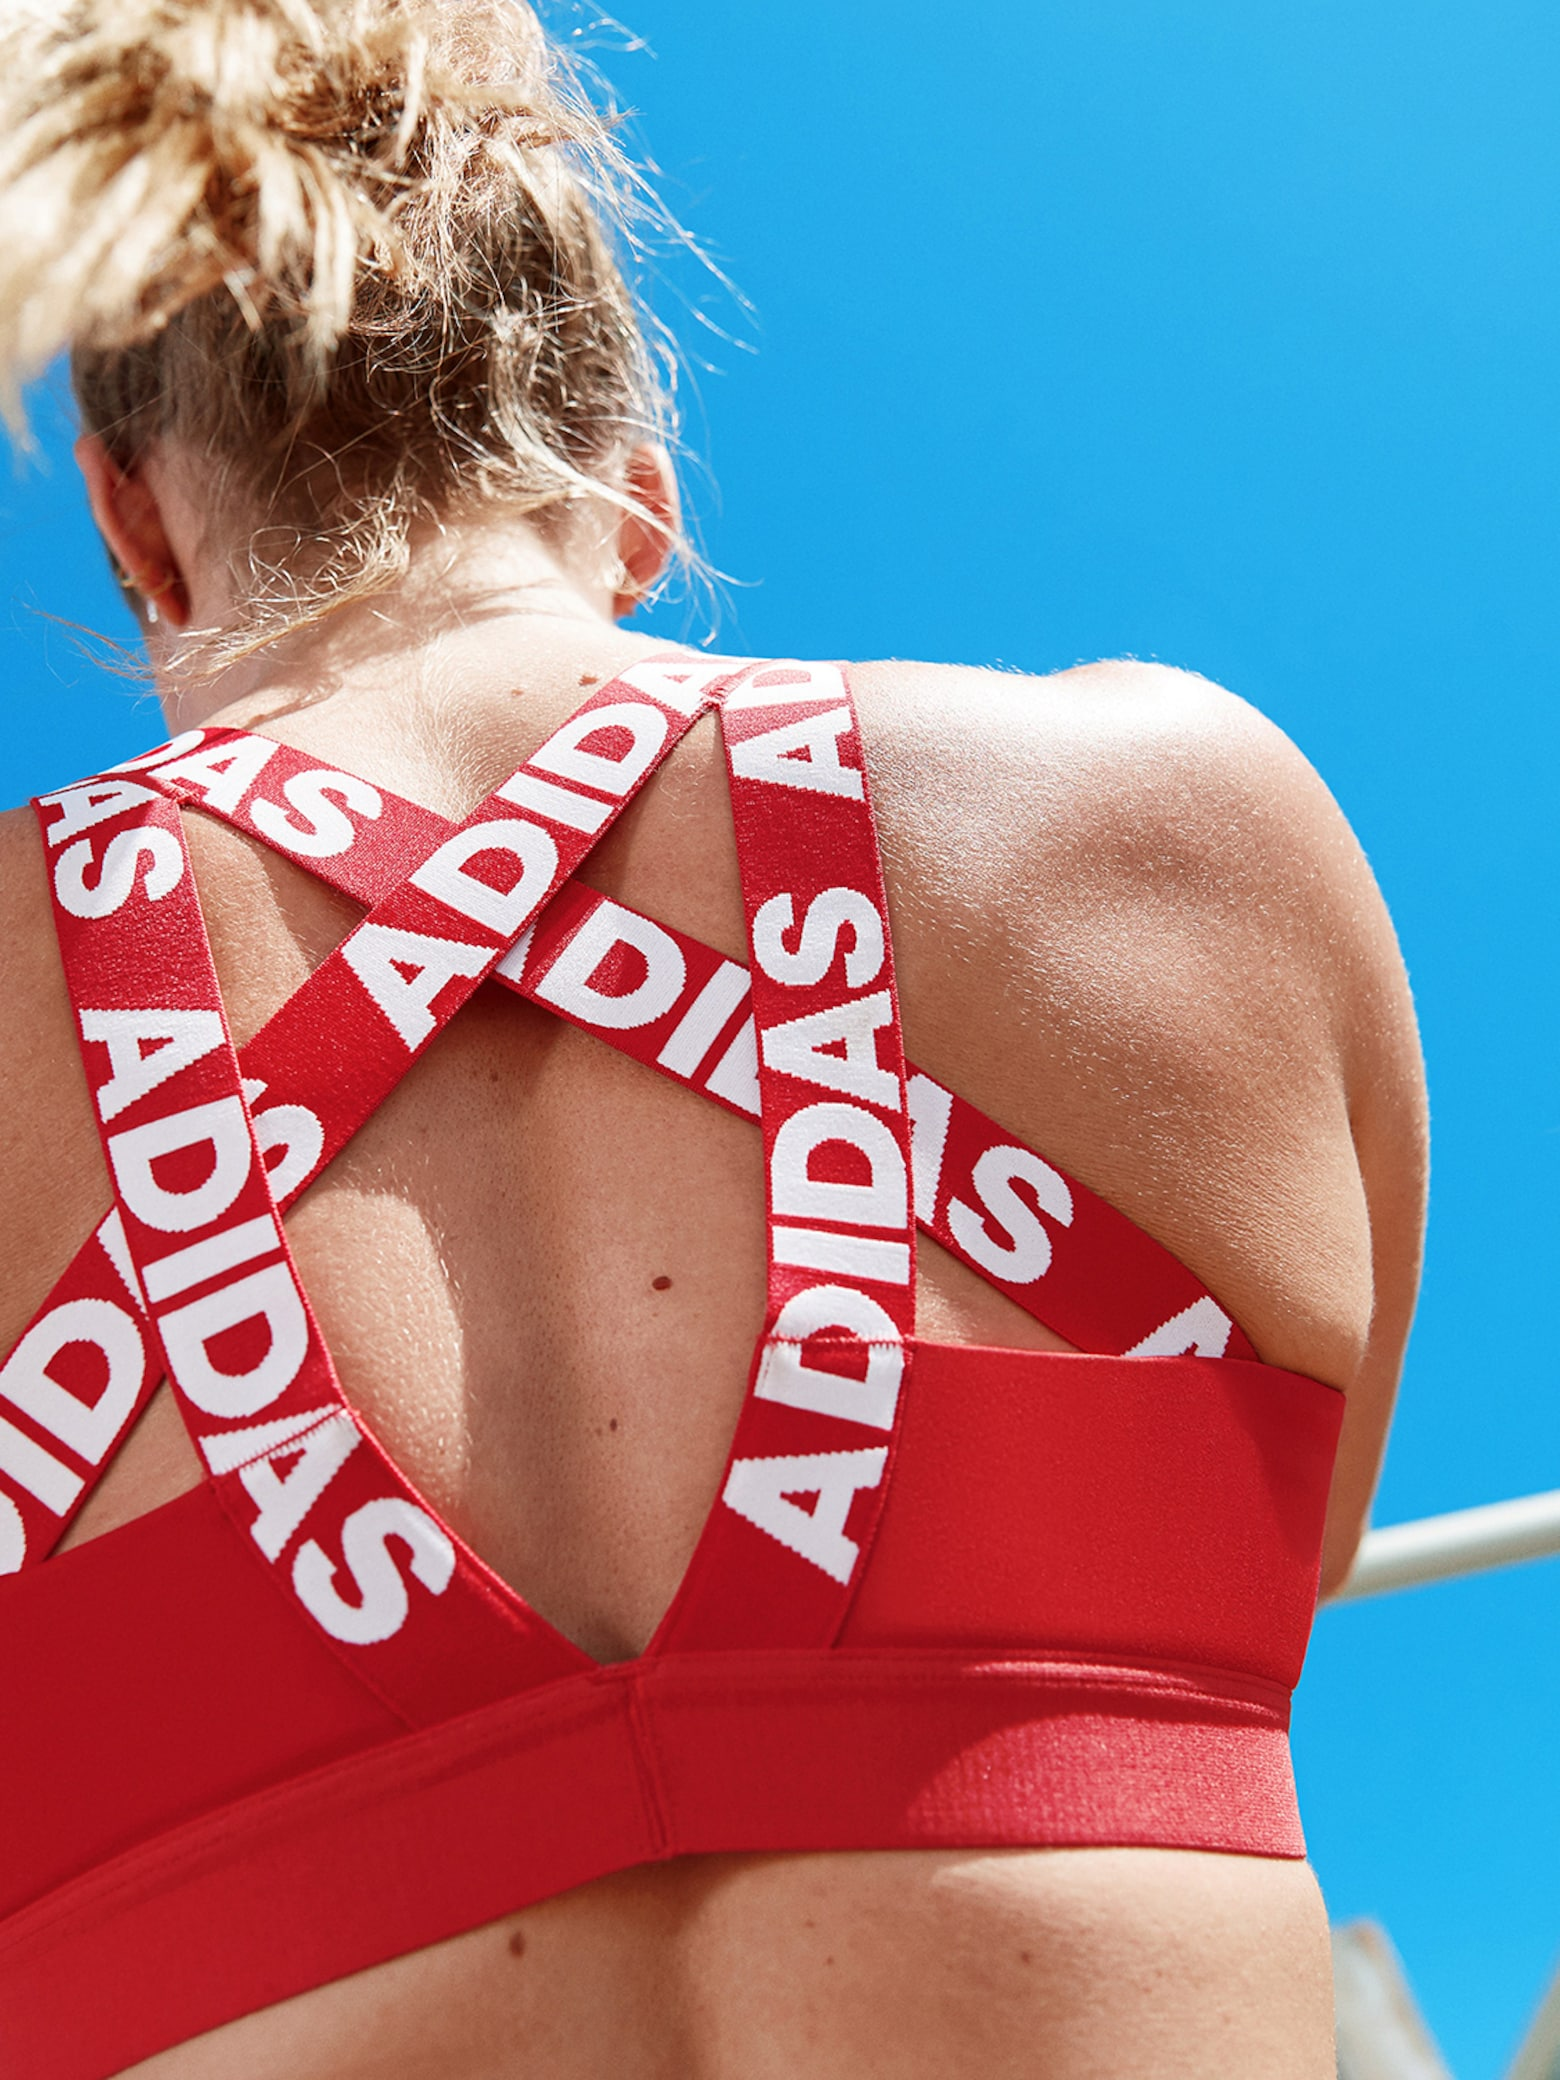 Sport-Bras by adidas Find the perfect support